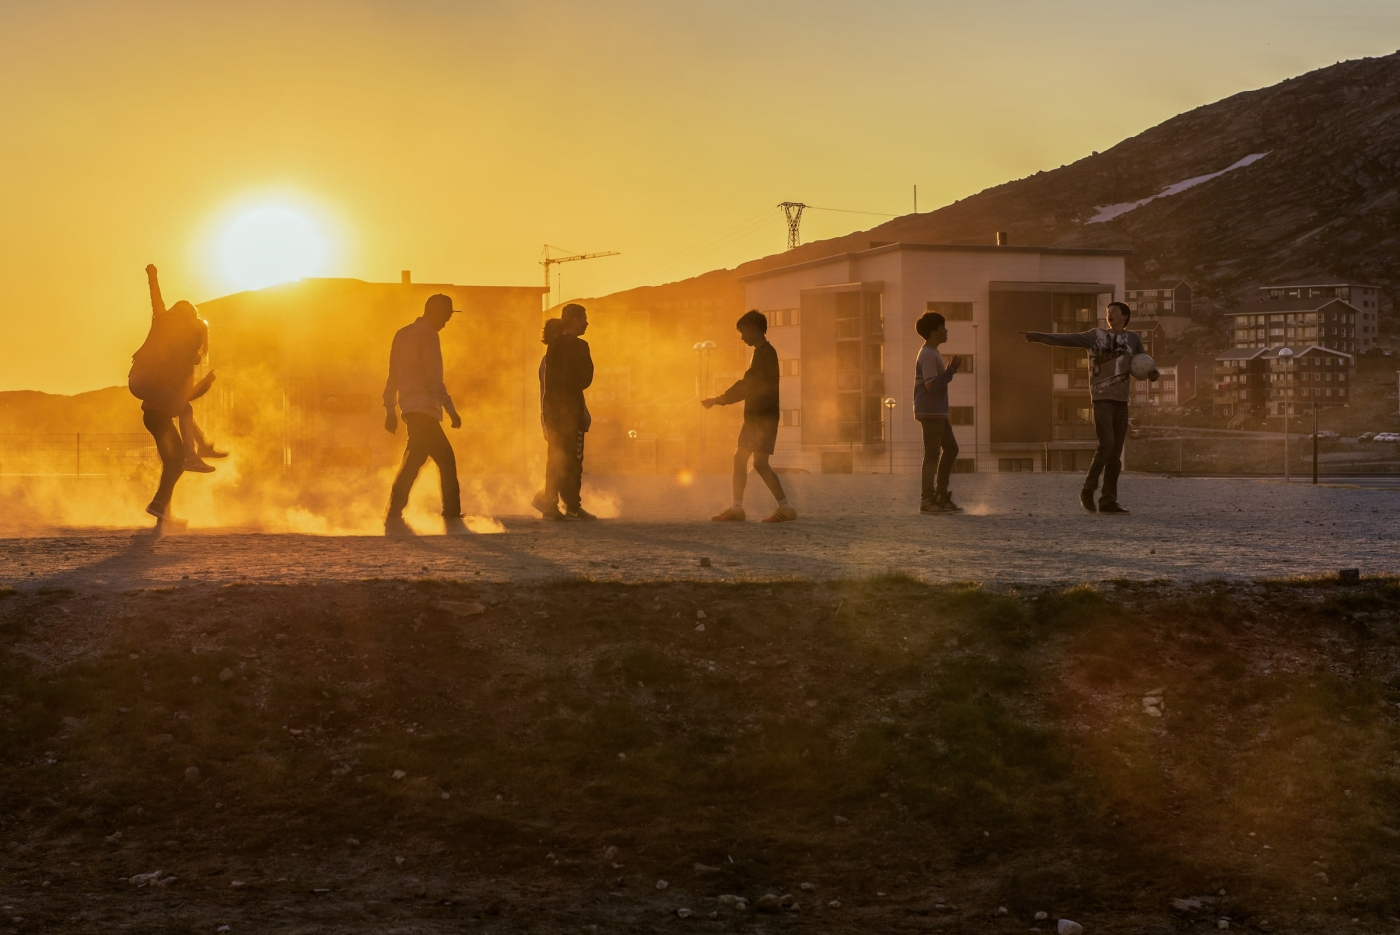 Young kids playing soccer in Qingorput in the sunset in Nuuk in Greenland. Photo by Carlo Lukassen - Visit Greenland